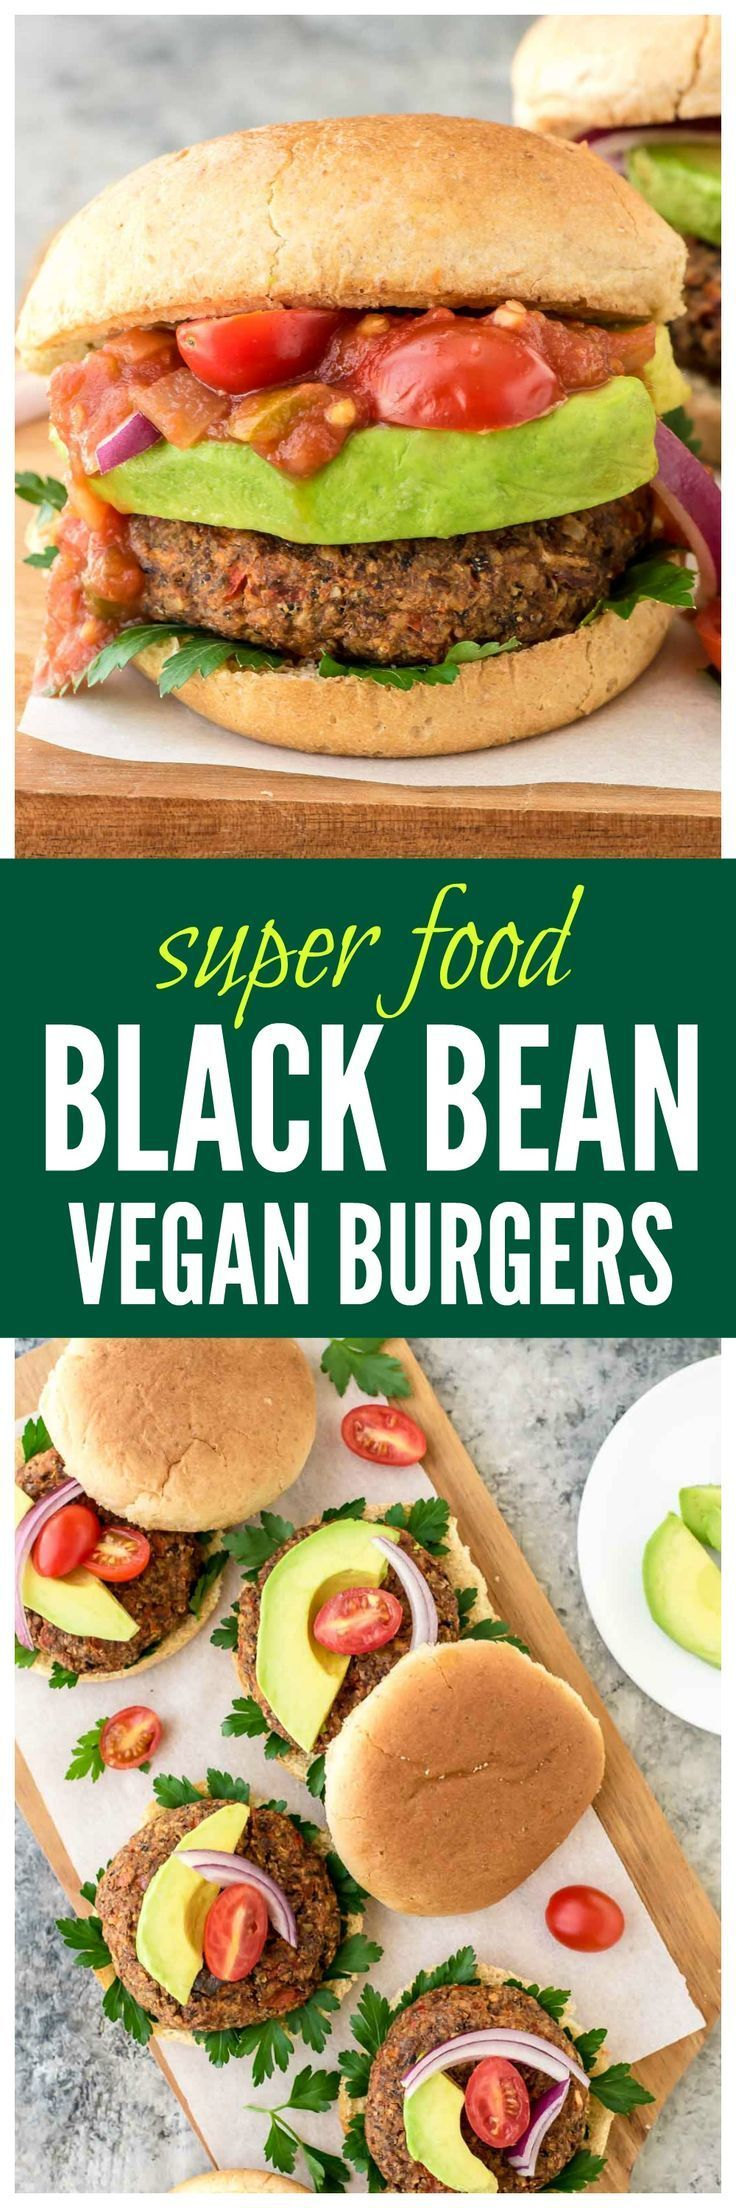 High protein, fiber, Omega-3s, and DELICIOUS! Try these Smoky Black Bean Vegan Burgers tonight for dinner. They're packed with super foods, easy to freeze, and even my picky toddler loved them! Get the recipe at http://www.wellplated.com @wellplated